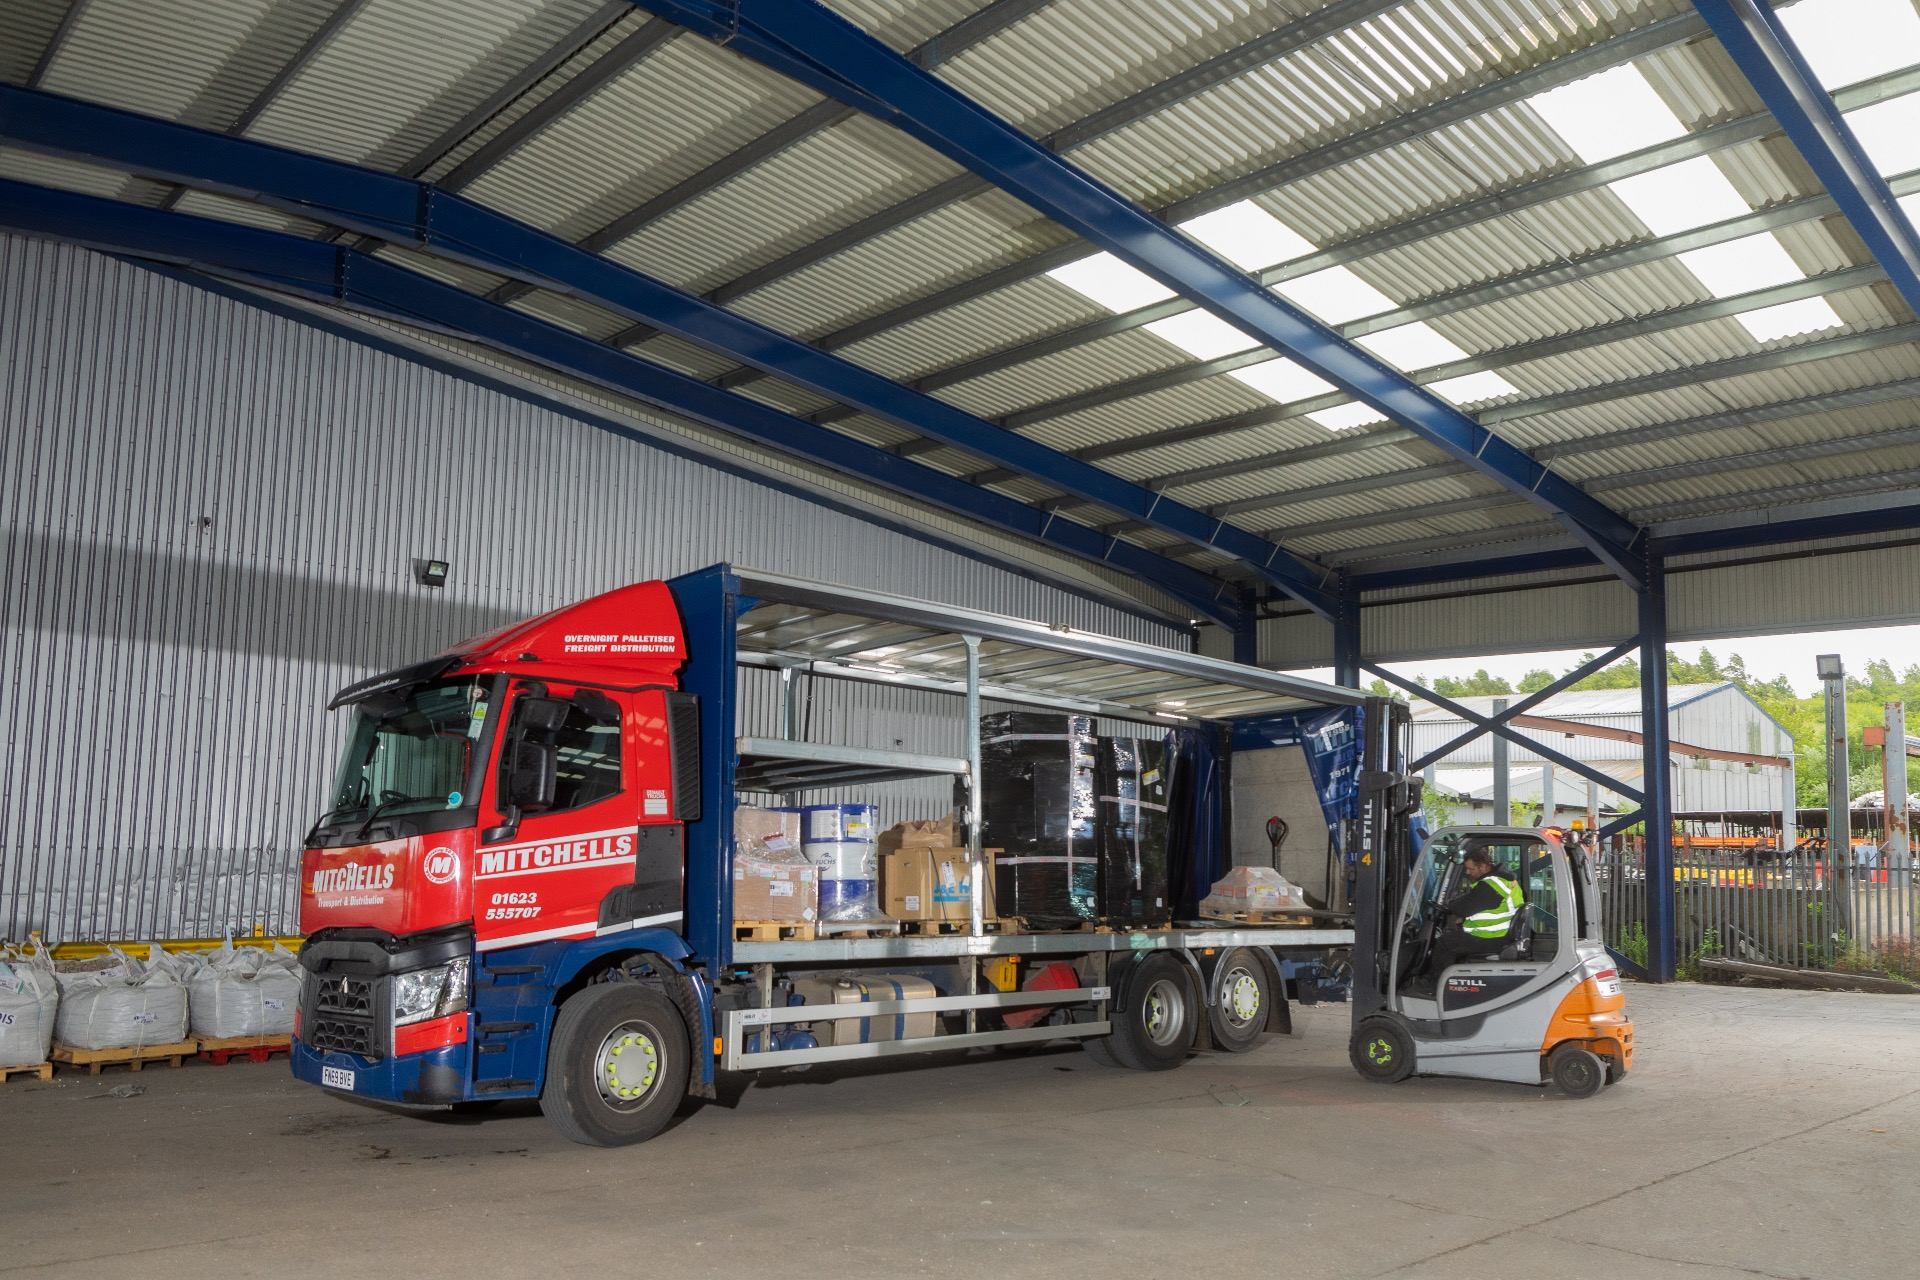 Mitchells of Mansfield Lorry being loaded by the team